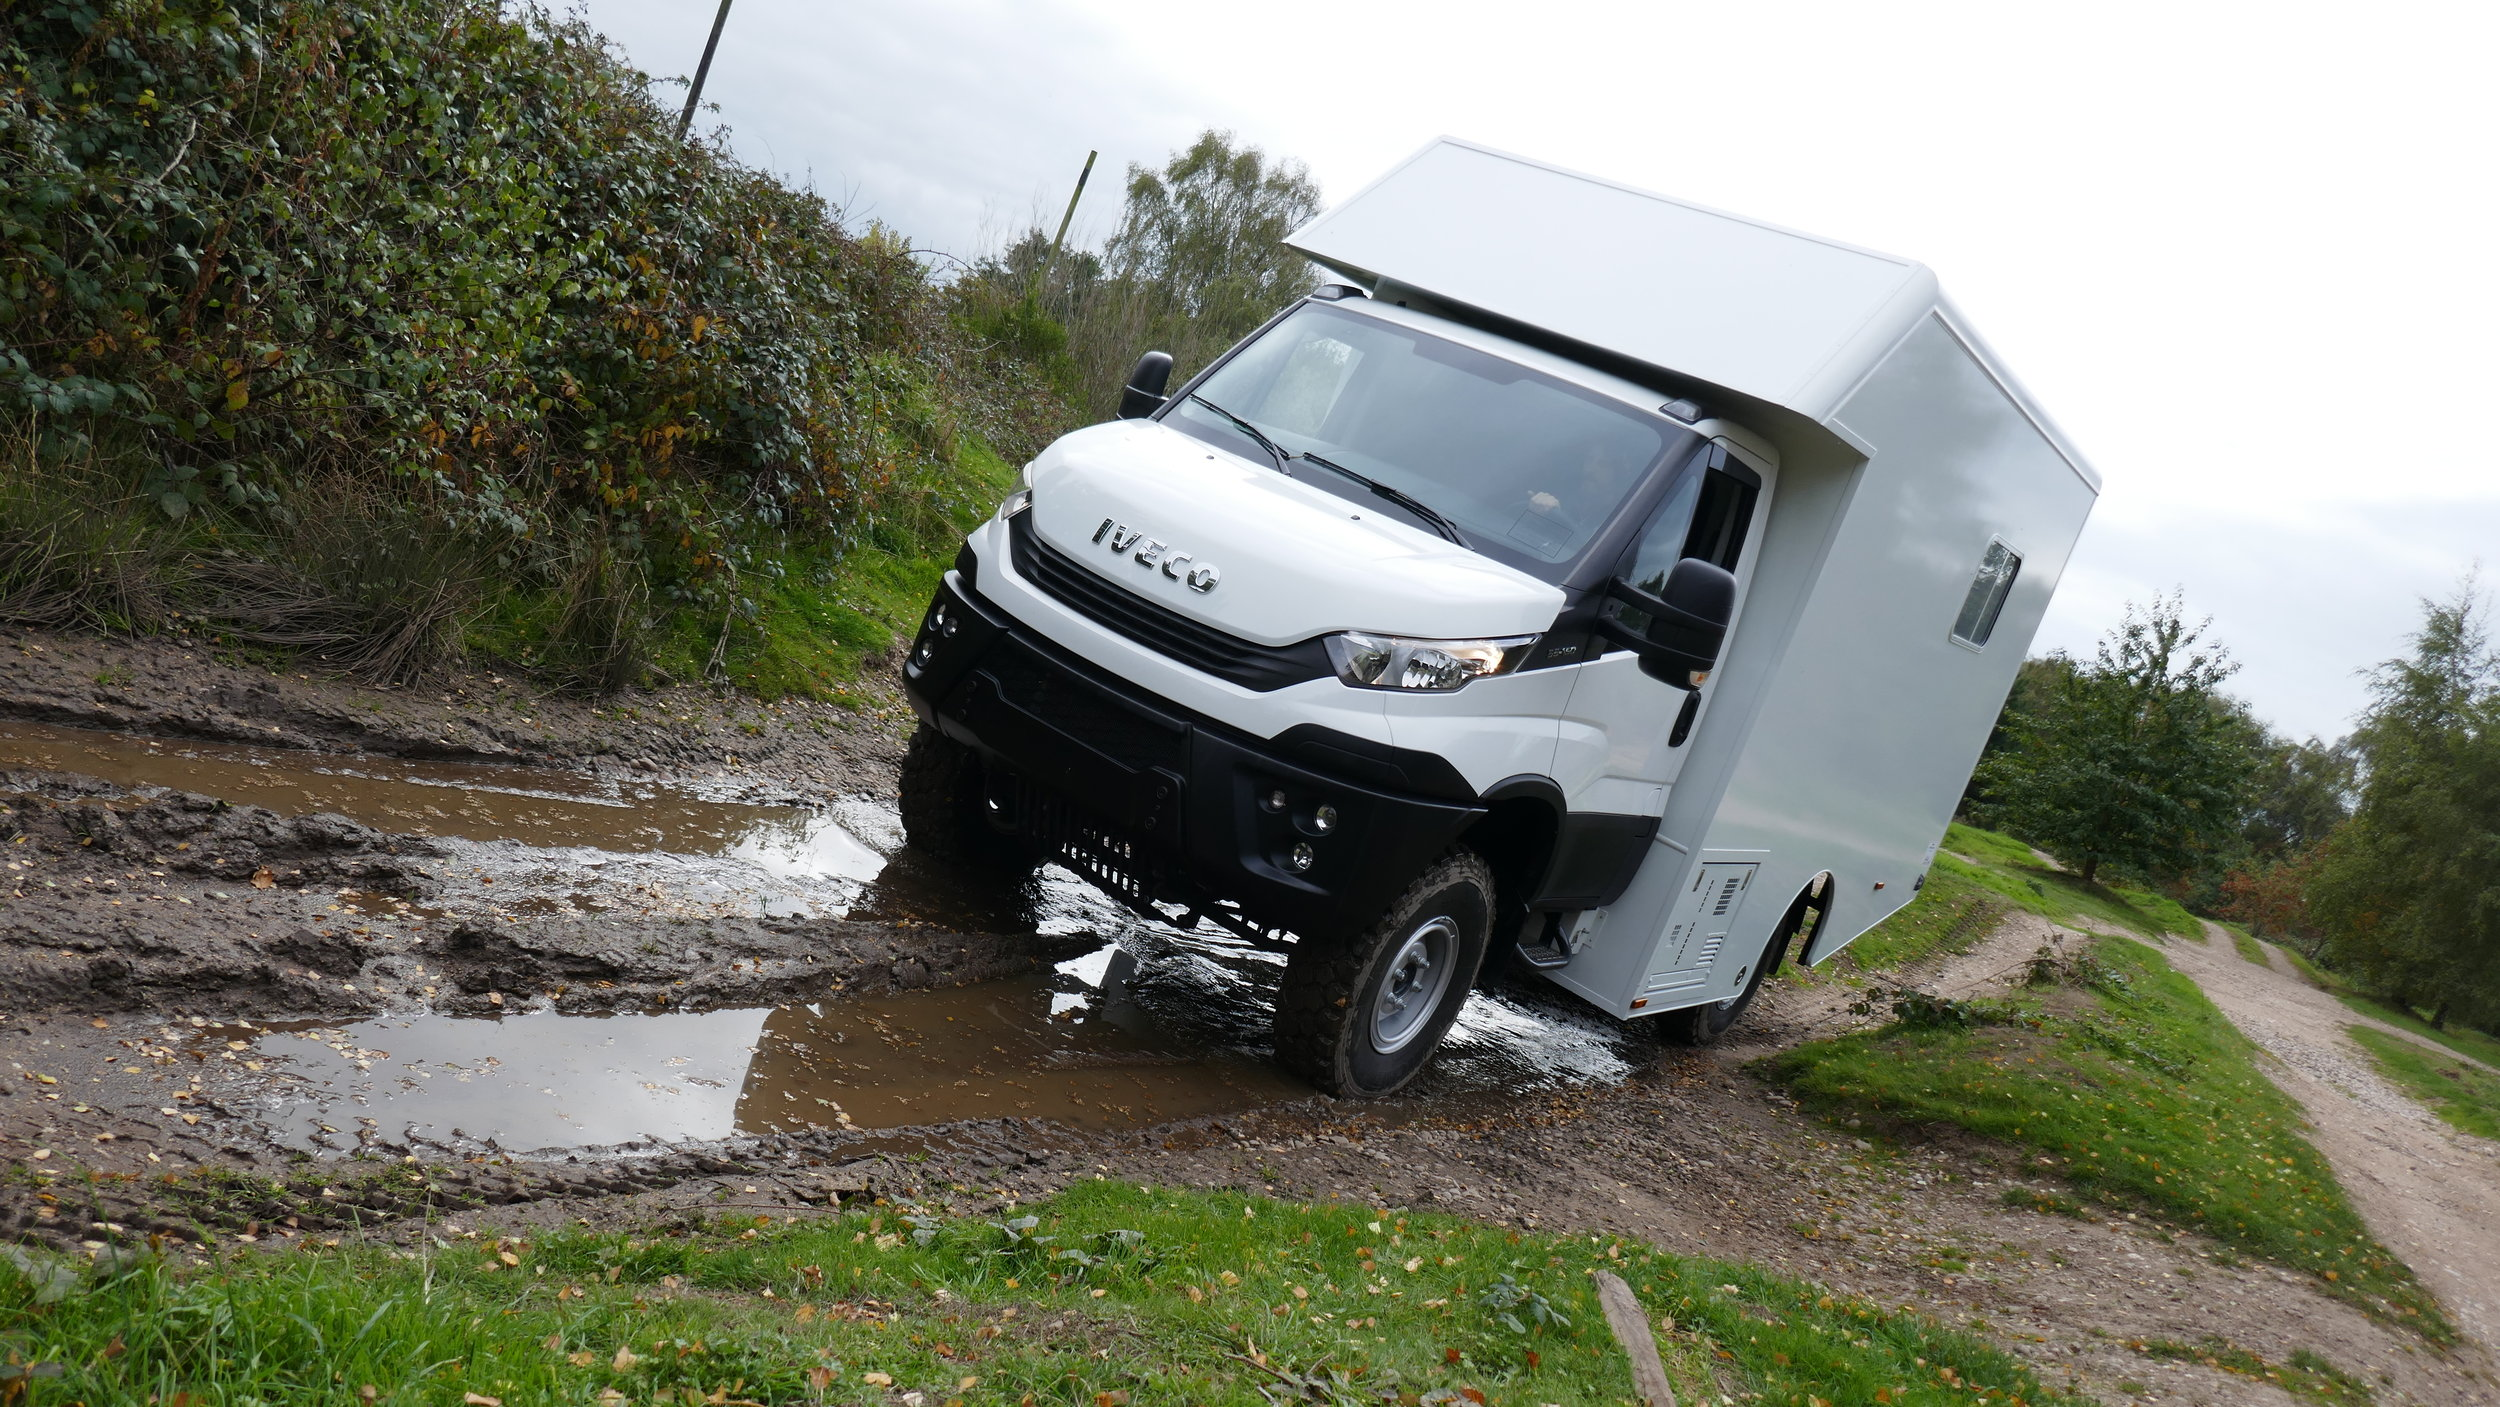 Iveco-daily-4x4-sherwood-truck-and-van 3.jpeg